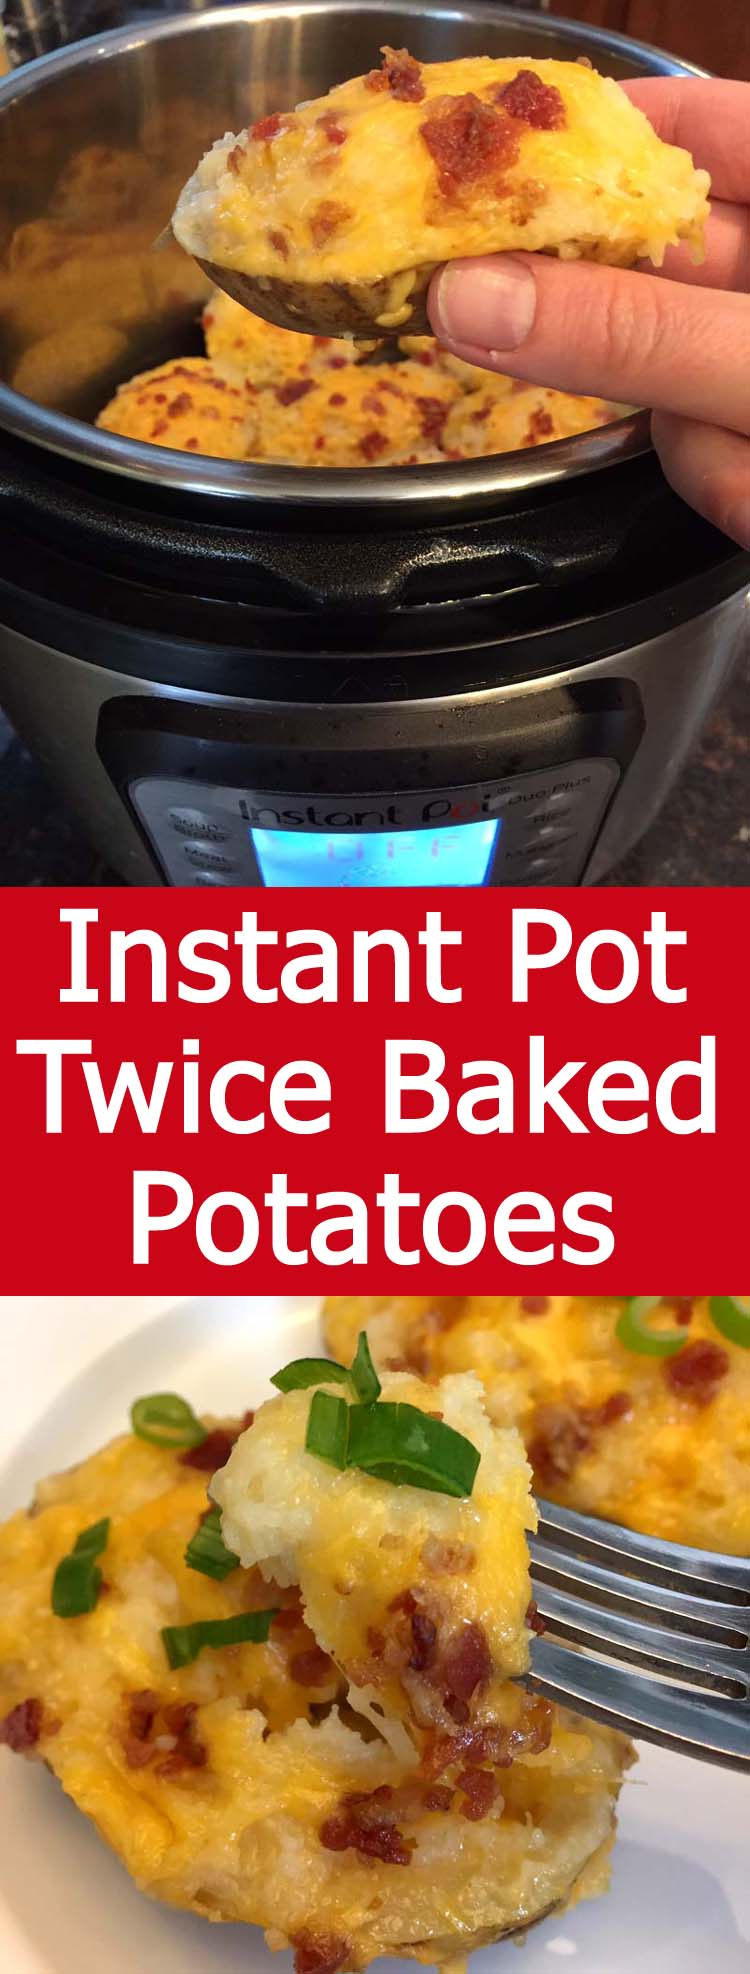 These Instant Pot twice baked potatoes are amazing! Made only using the Instant Pot, no oven needed! Twice as fast as the oven method! I love double baked potatoes!